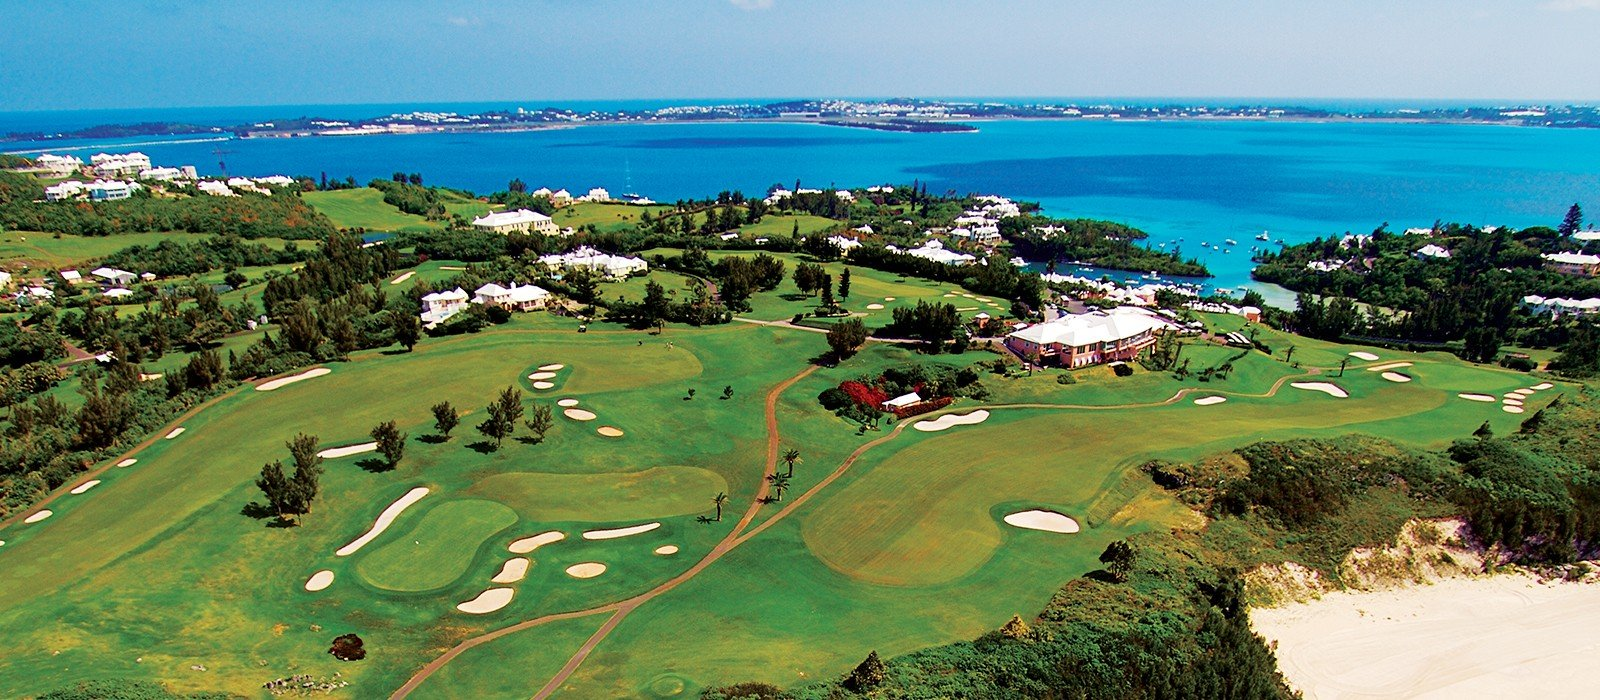 Aerial veiw of Mid Ocean Golf Course in Bermuda